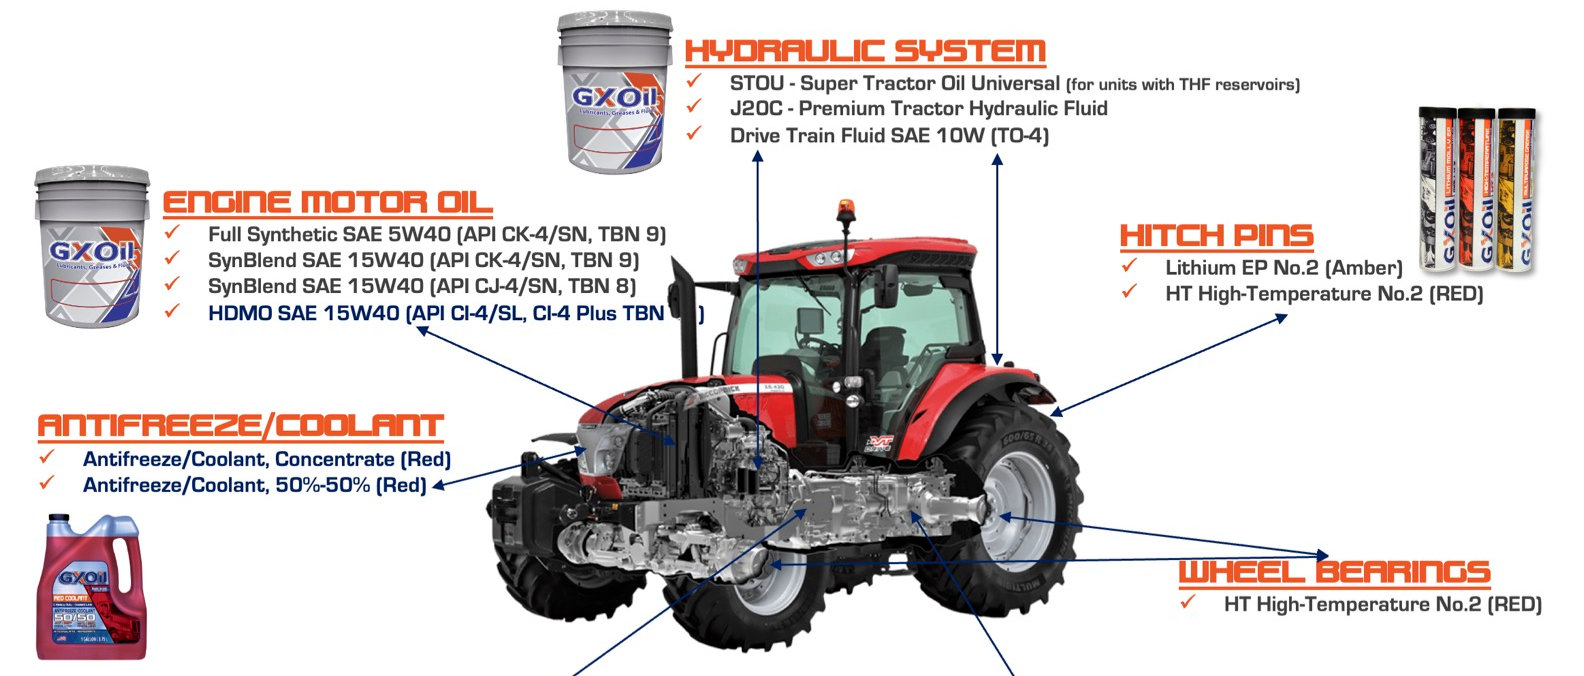 GXOil-Agricultural Equipment Lubrication Guide (2021).jpg